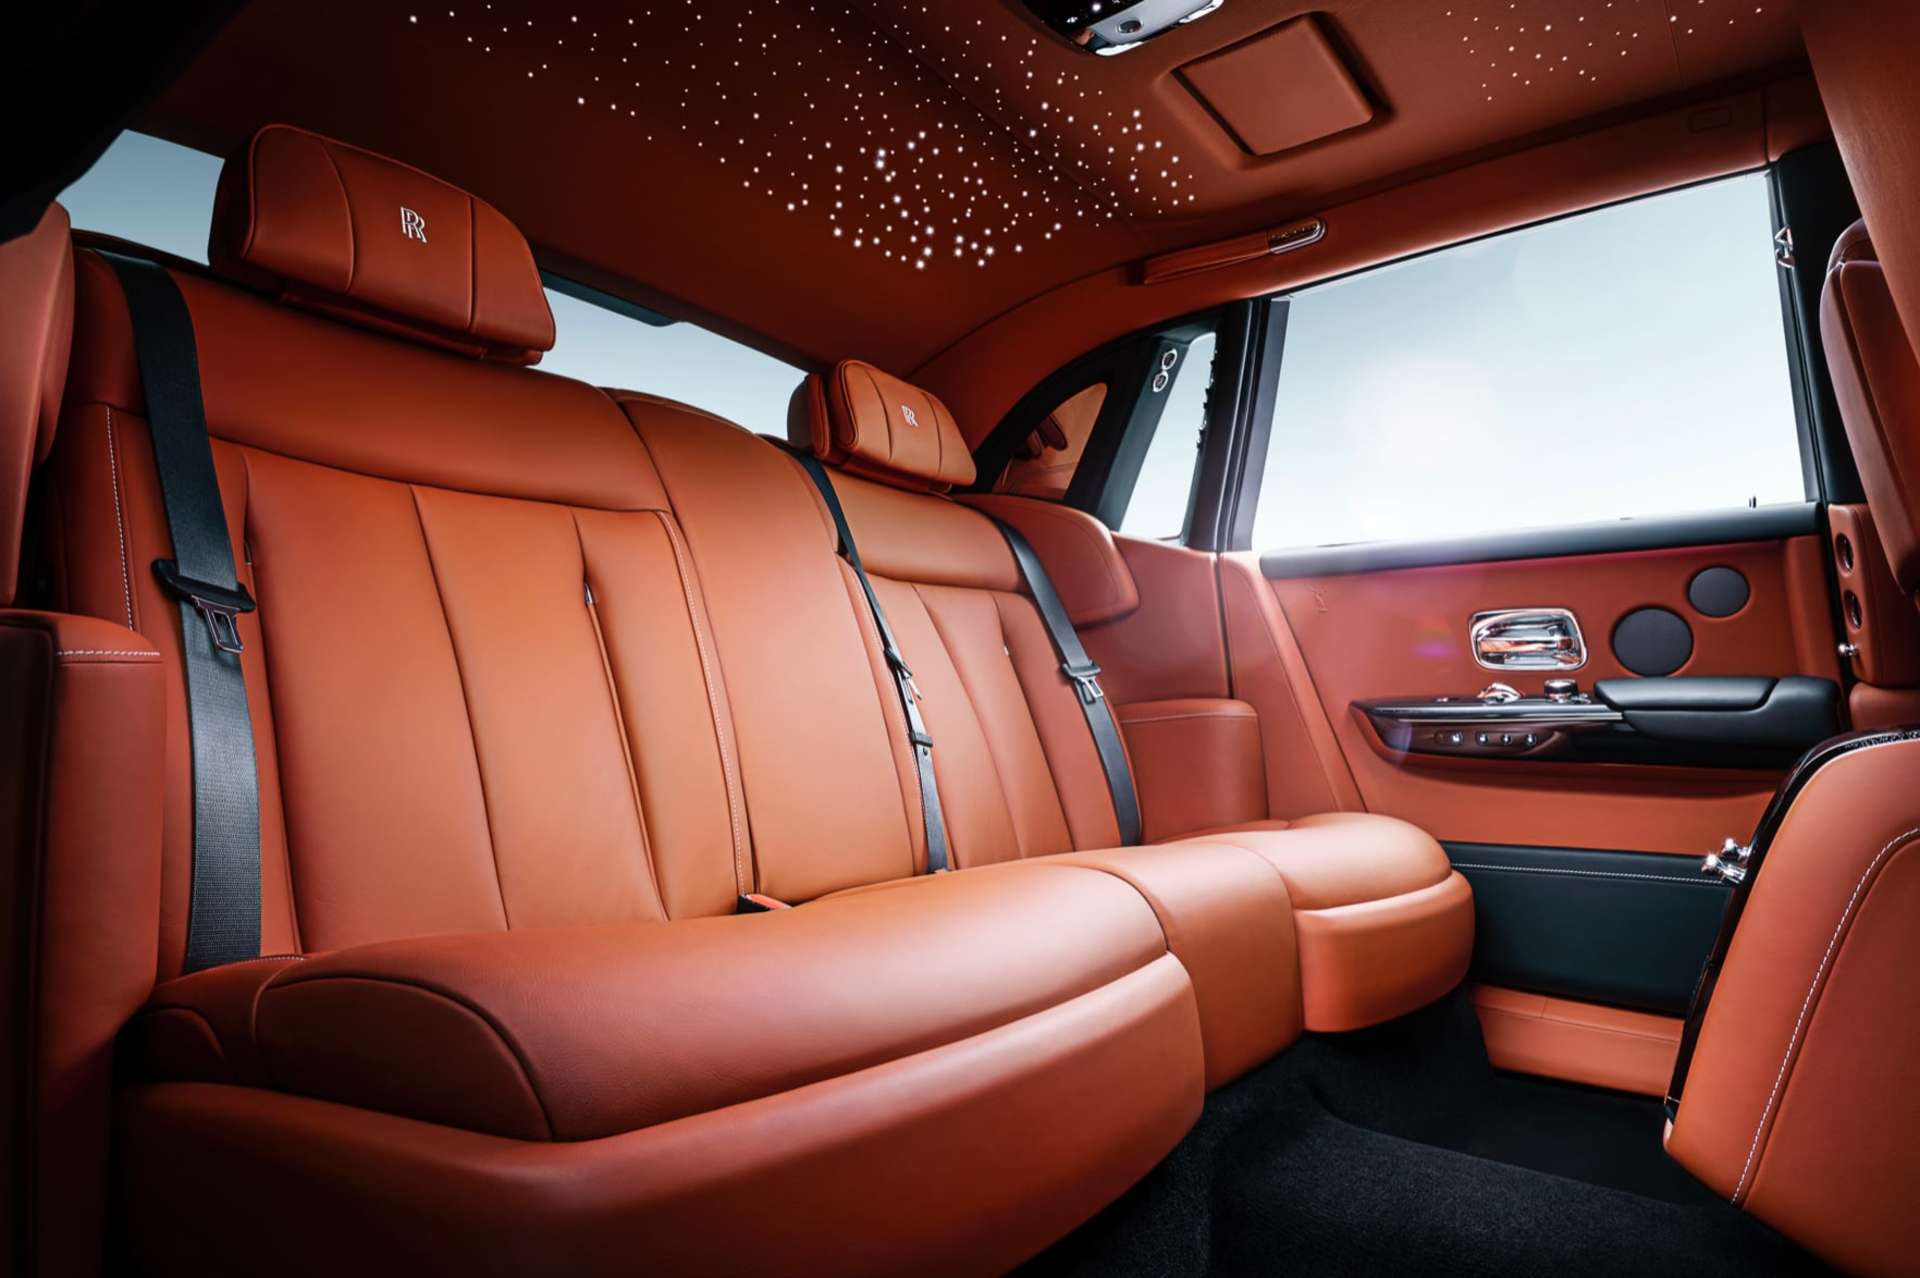 An interior shot of the Rolls-Royce Phantom motor car